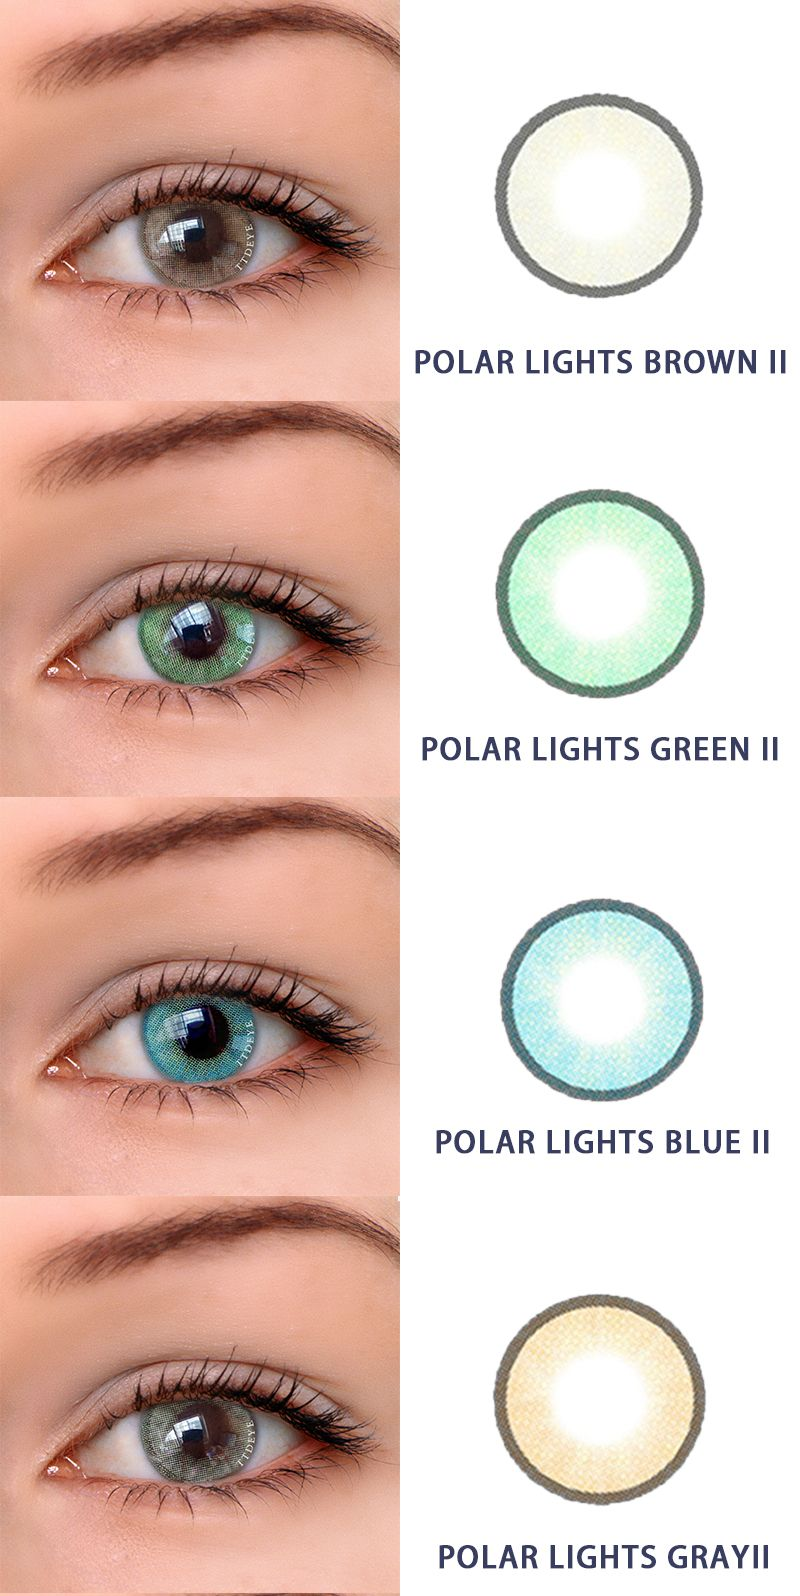 a76f95216 ttdeye.com ,the online shop contact colored lenses.Polar lights II . It has  brown ,green ,blue and gray